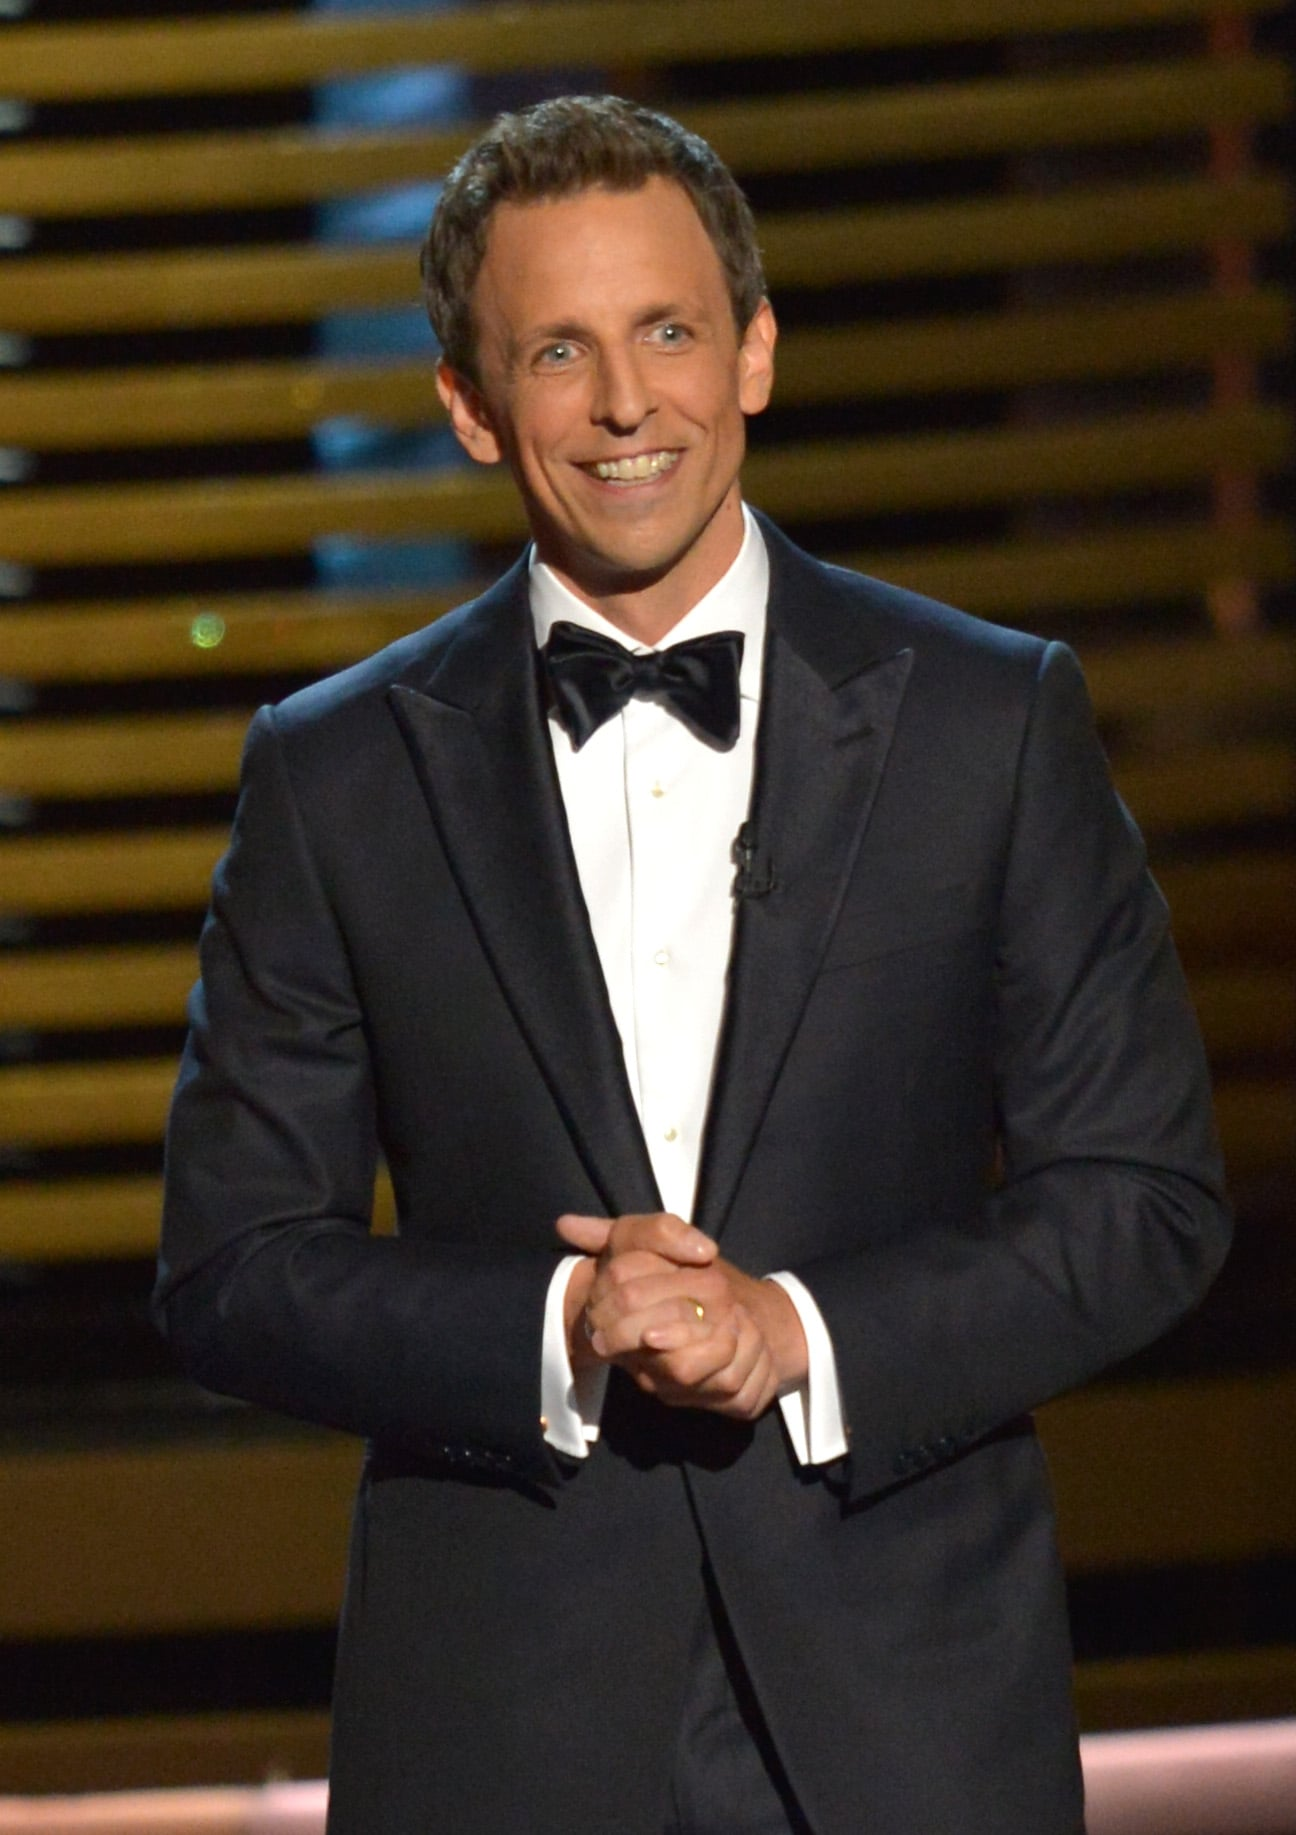 """""""That's right, kids. Jesse Pinkman lived, Dexter lived, but your mother didn't make it. Goodnight."""" — Seth Meyers, on the ending of How I Met Your Mother"""